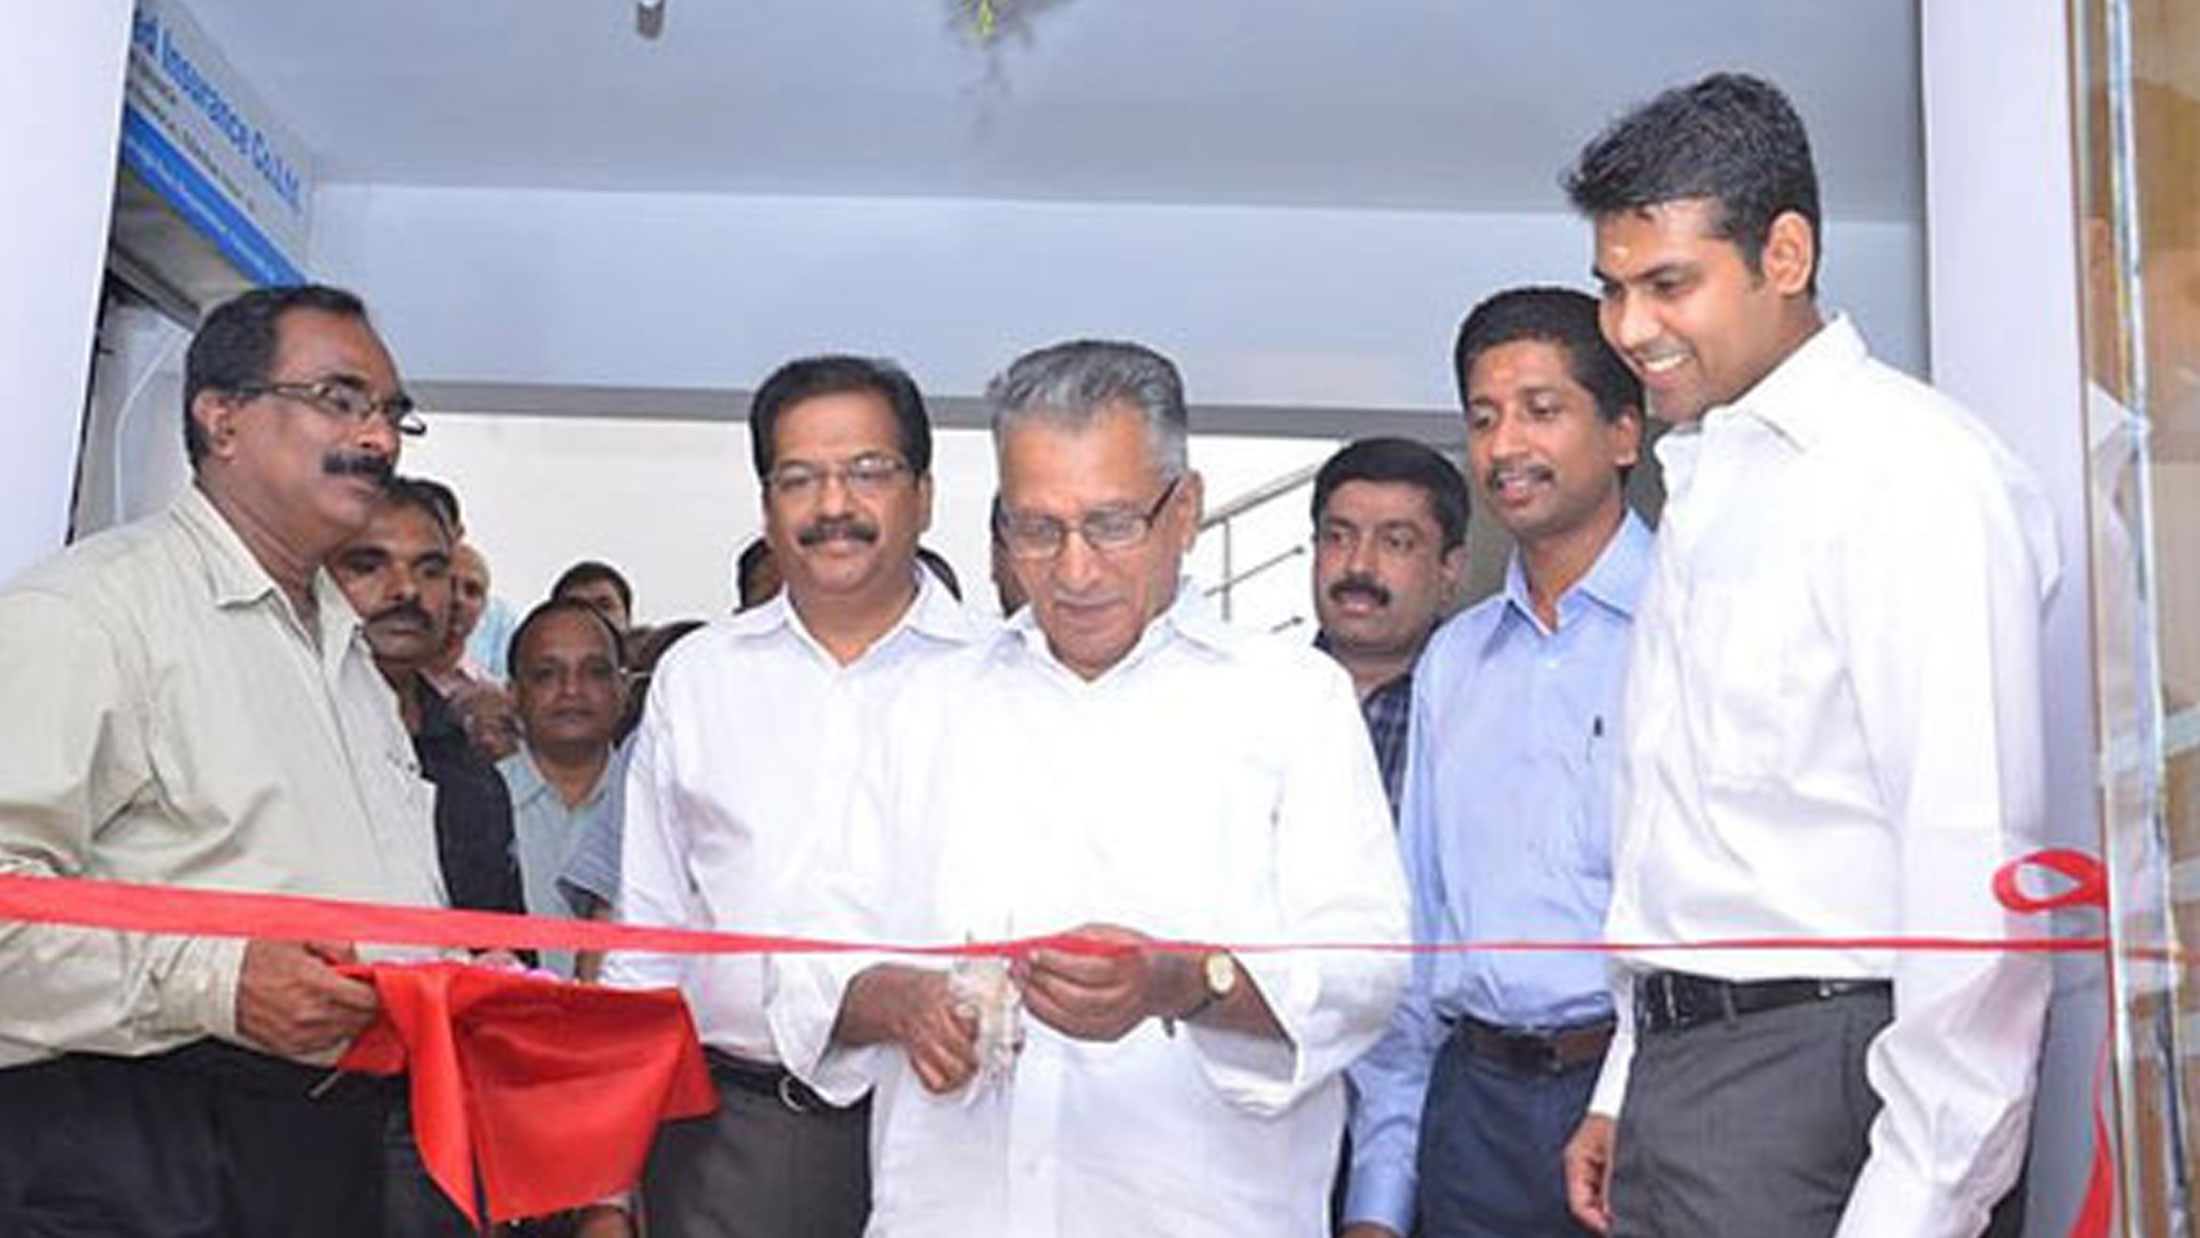 Elite Developers – New office Inaugurated